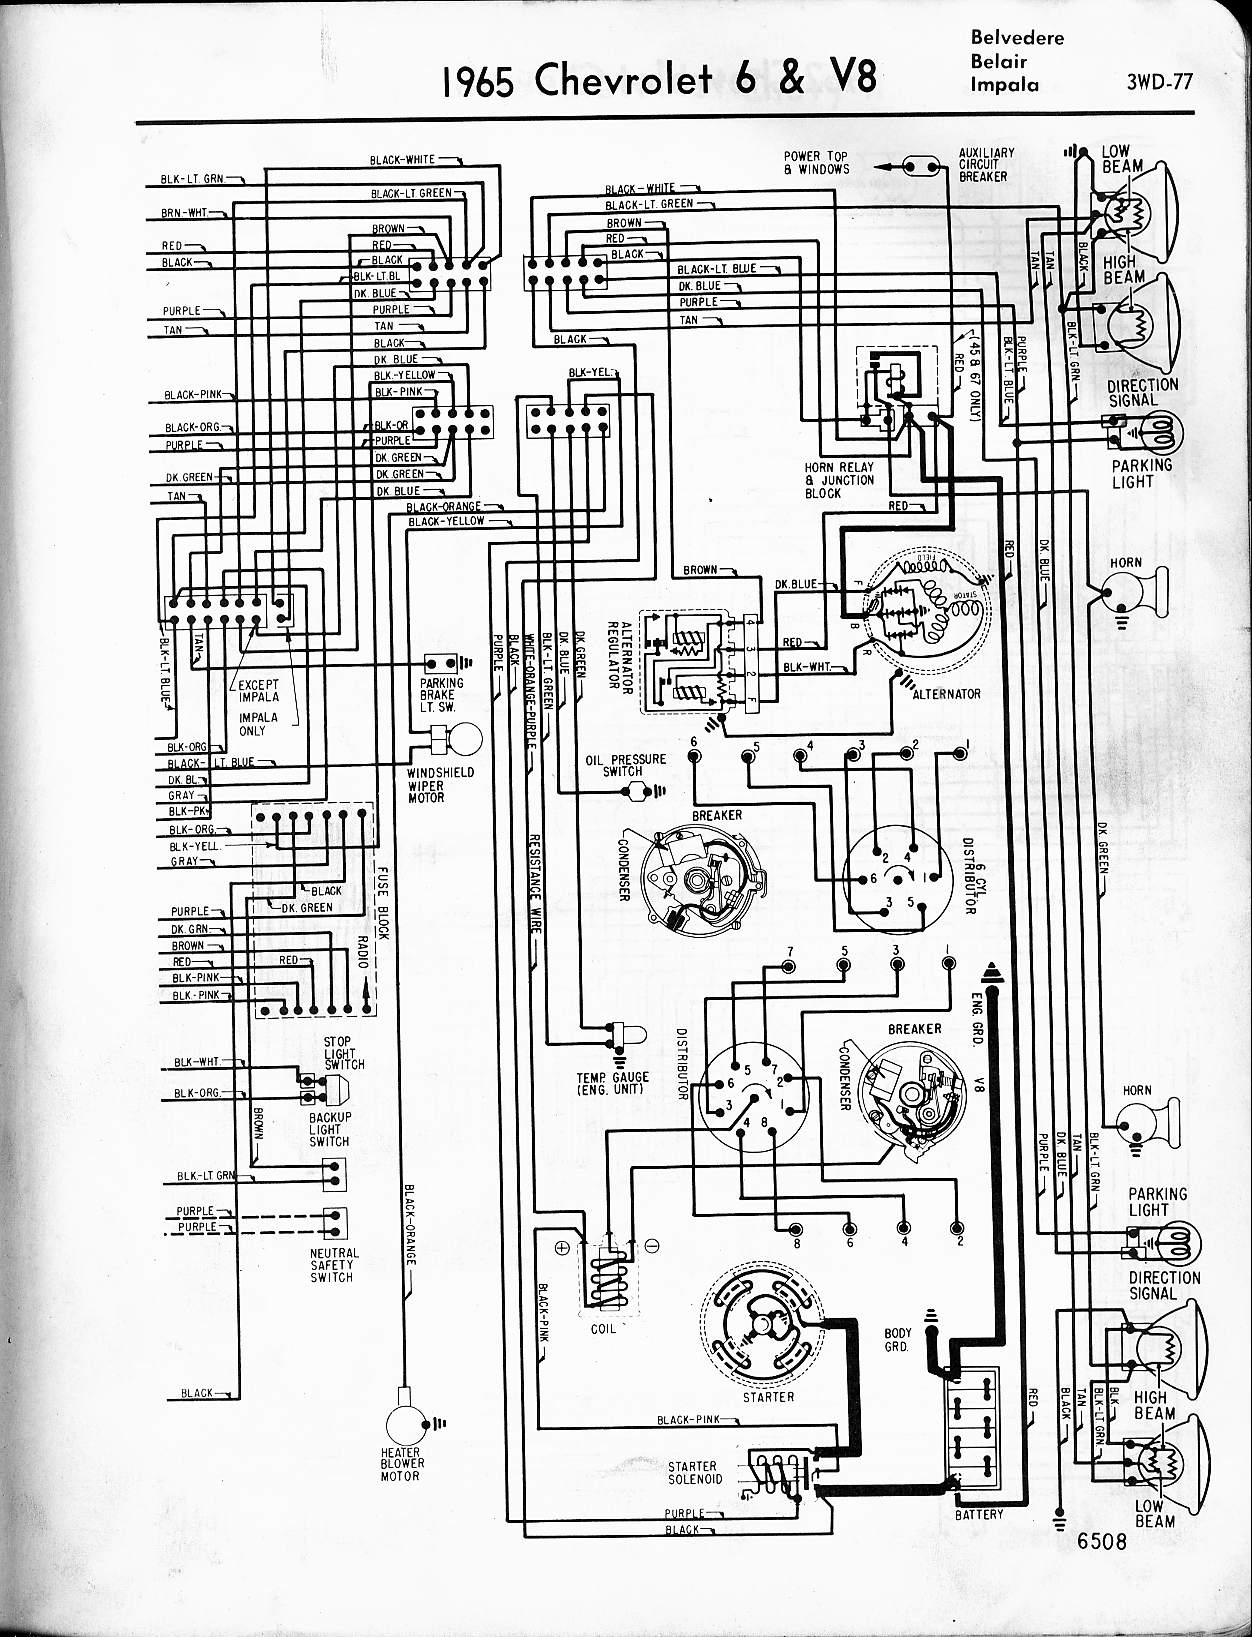 MWireChev65_3WD 077 chevy diagrams 1970 chevelle dash wiring diagram at crackthecode.co